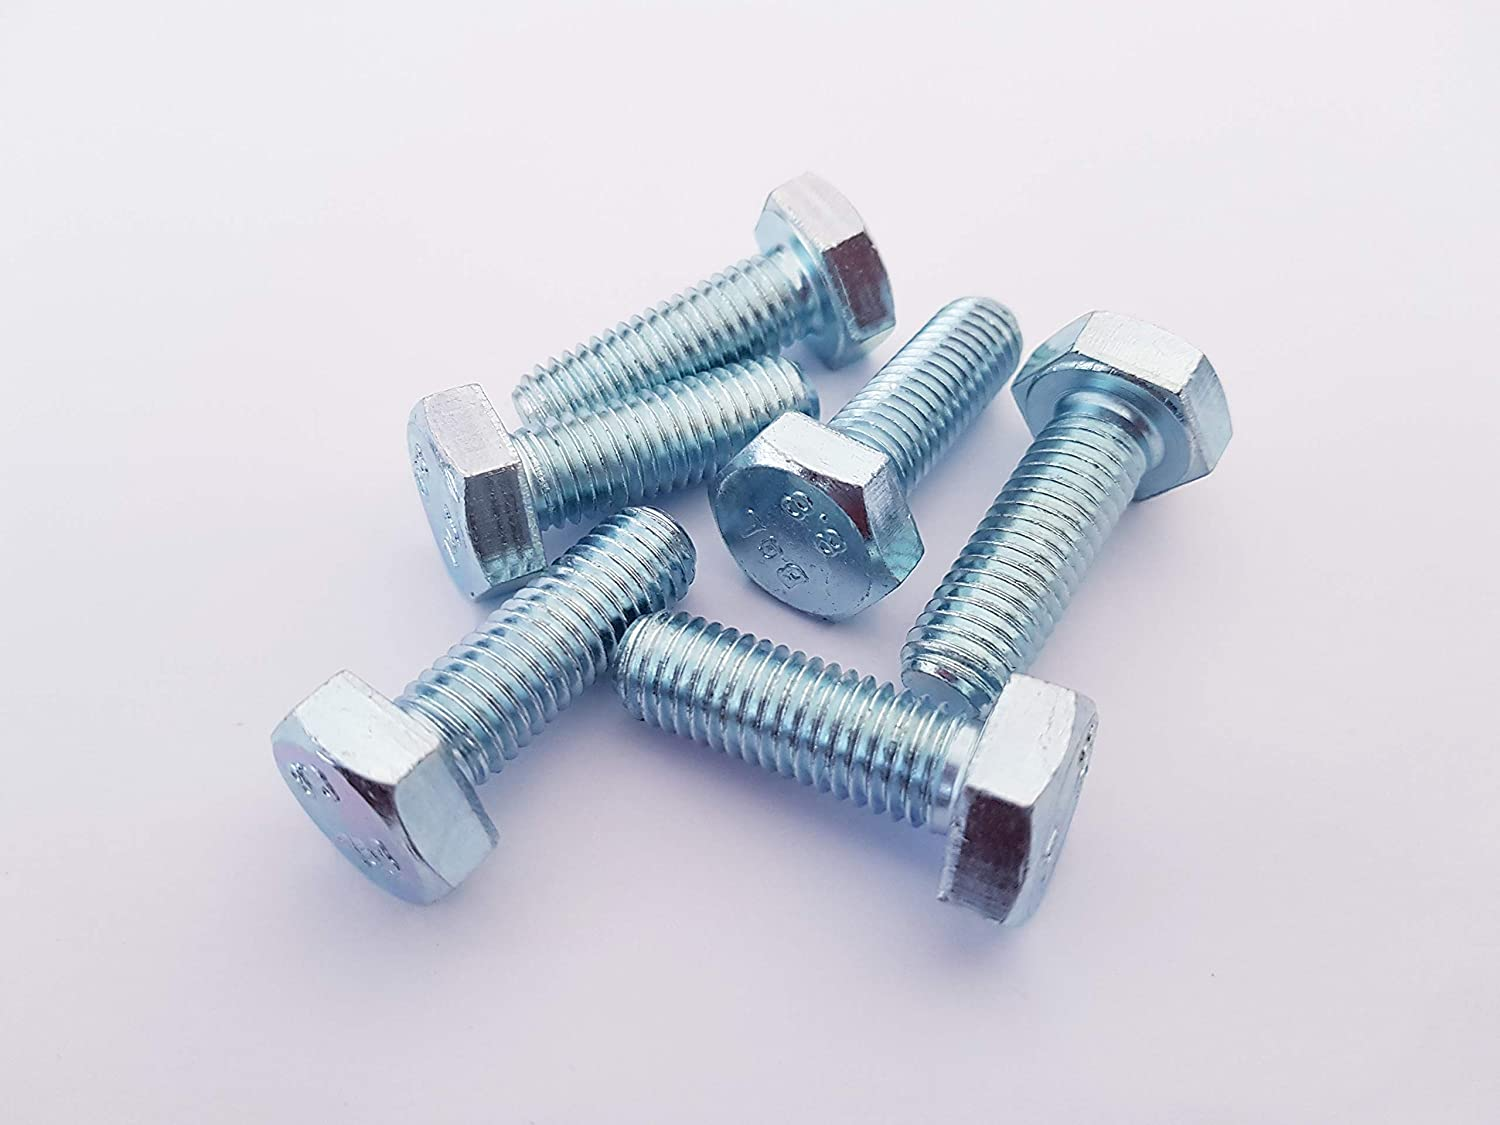 Pack of 10 ZINC Plated Fully Threaded SETSCREWS 10mm x 60mm M10 HEX Bolts